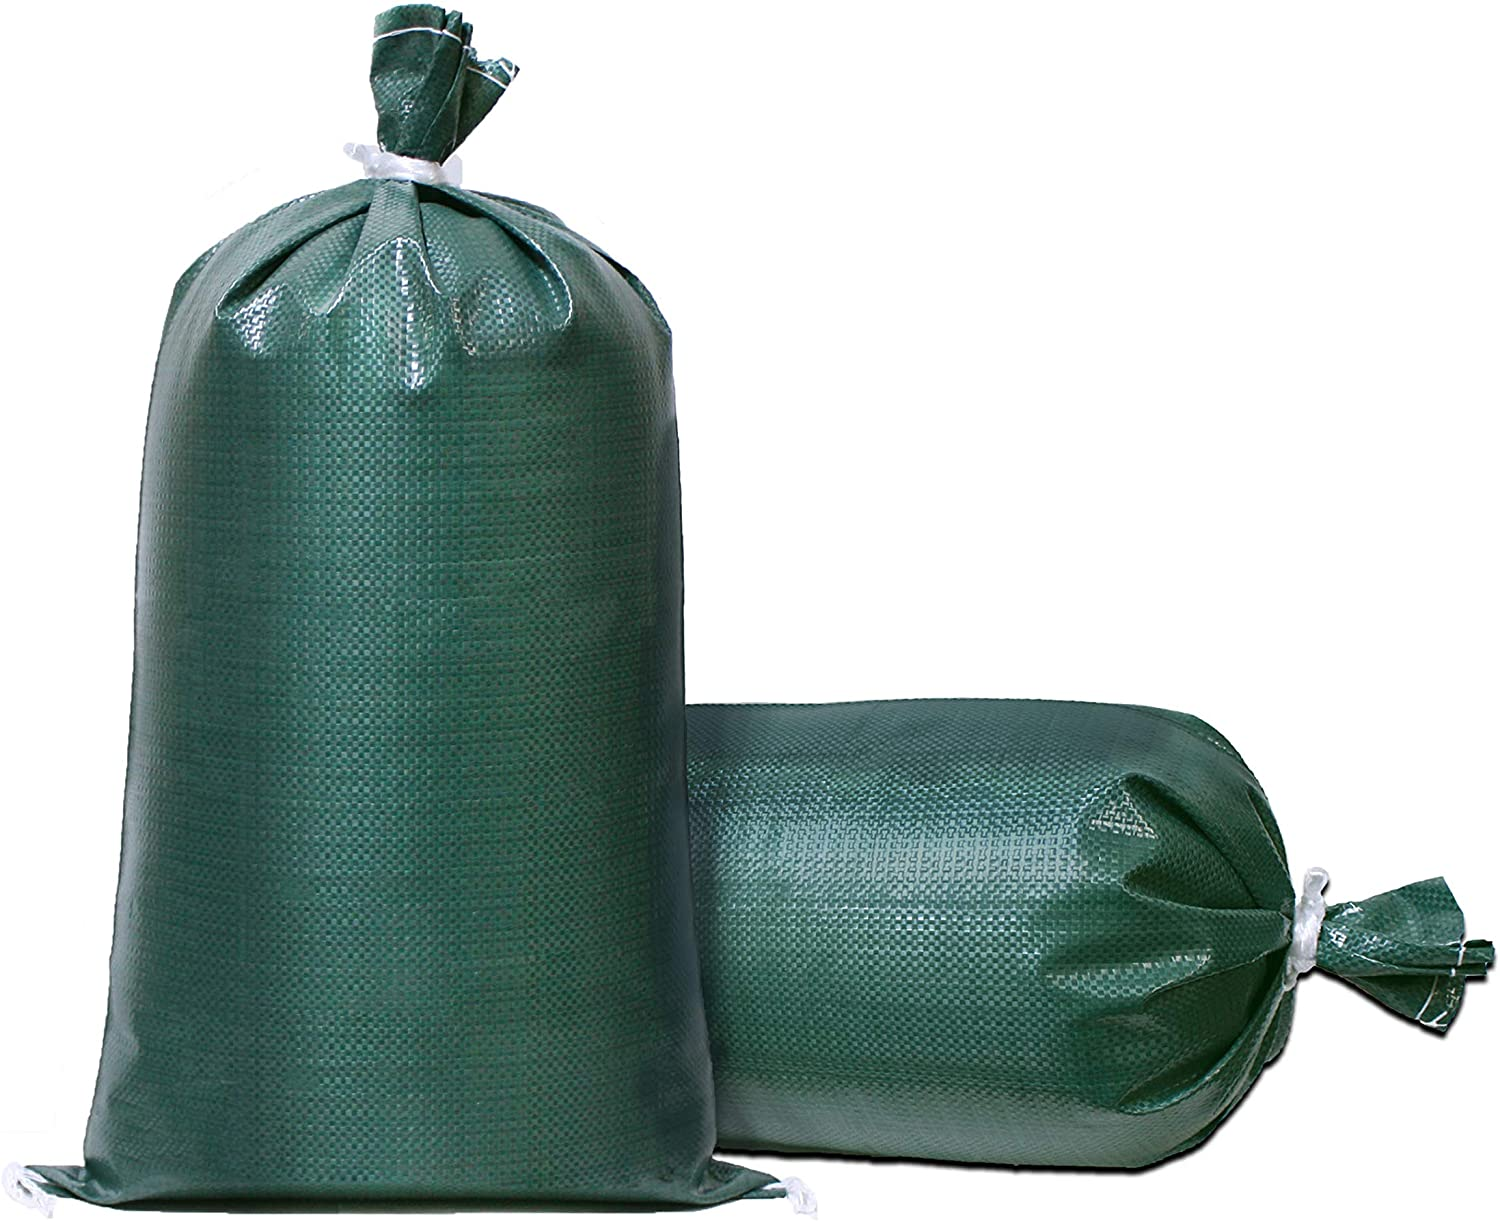 TerraRight Sandbags - Extra Durable Empty Green Woven Polypropylene Sand Bags w/Ties, Max. UV Protection, 14